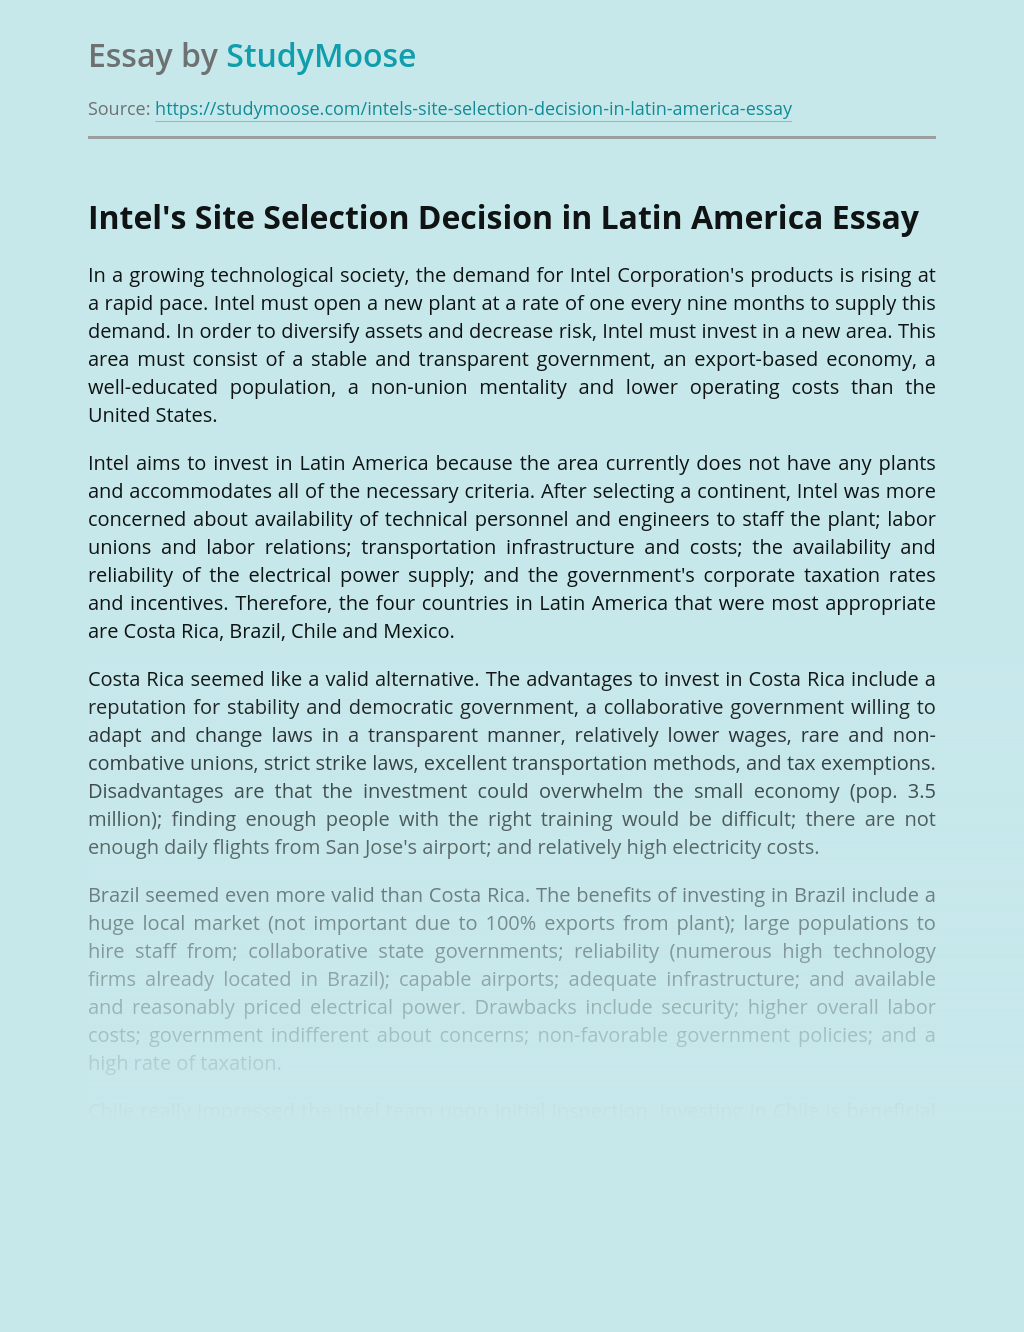 Intel's Site Selection Decision in Latin America